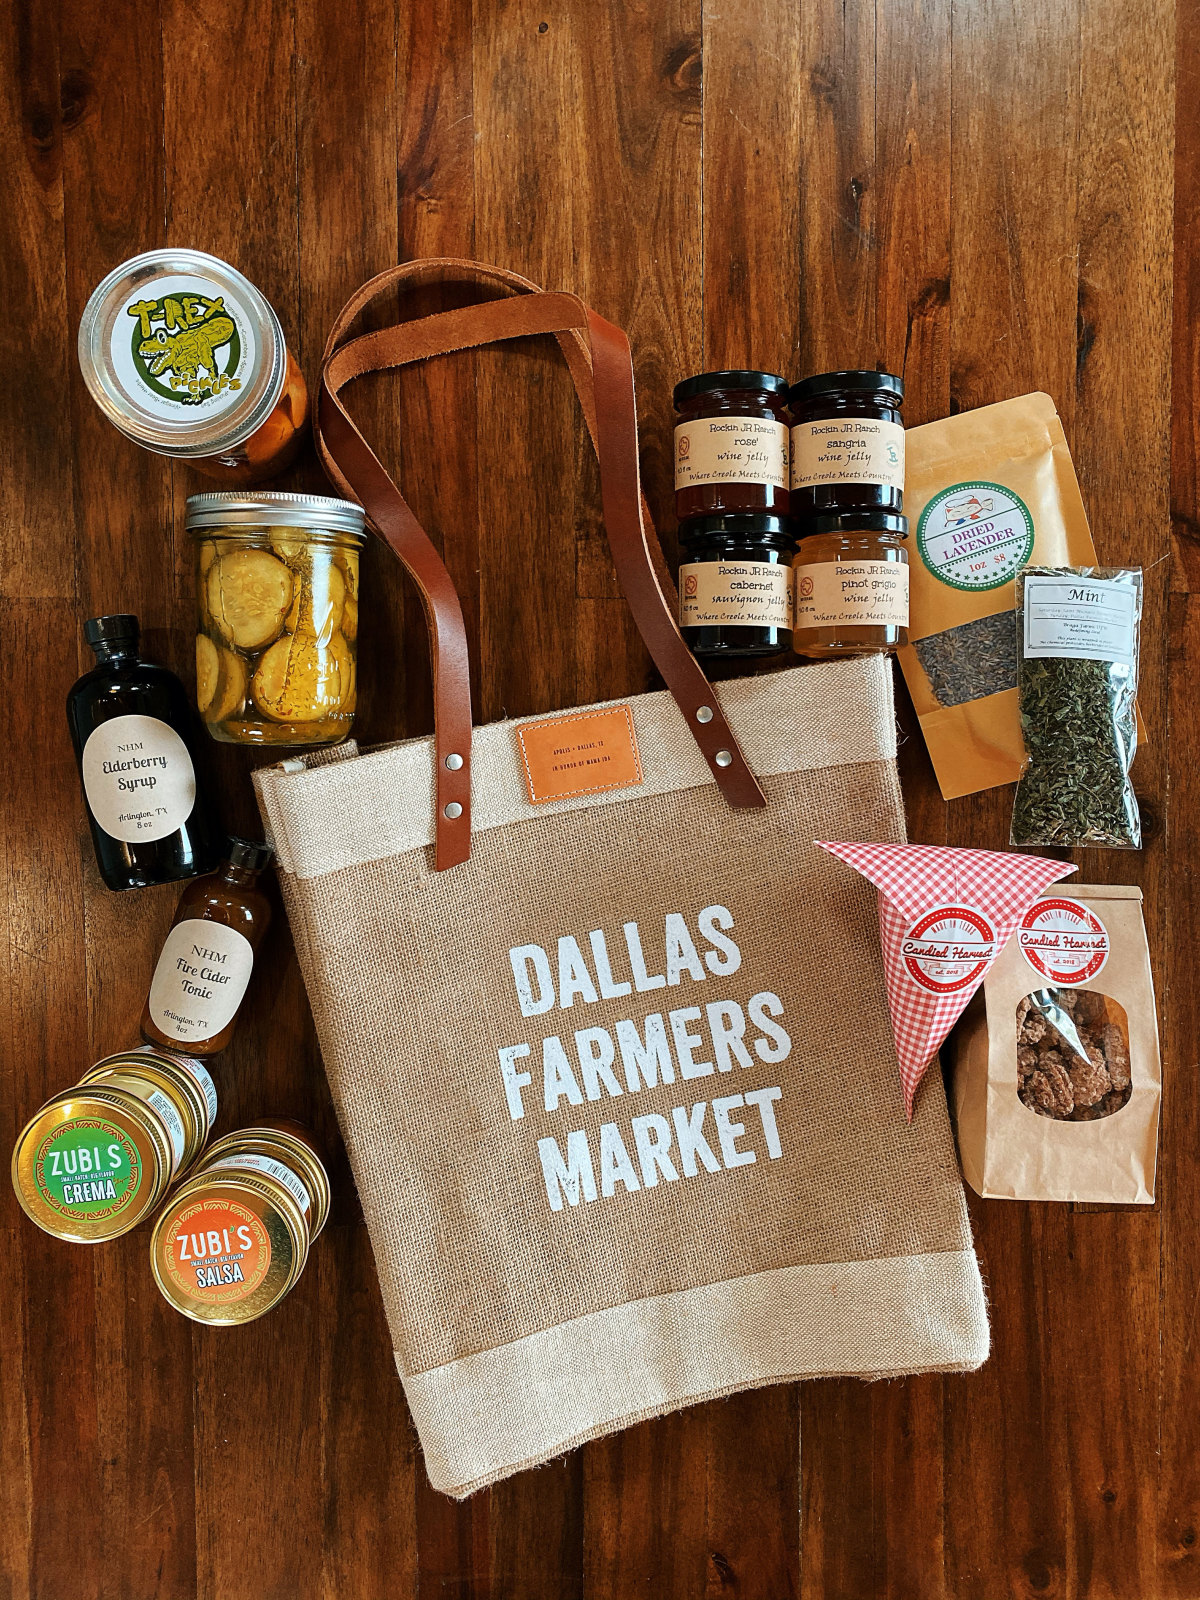 Dallas Farmers Market bag